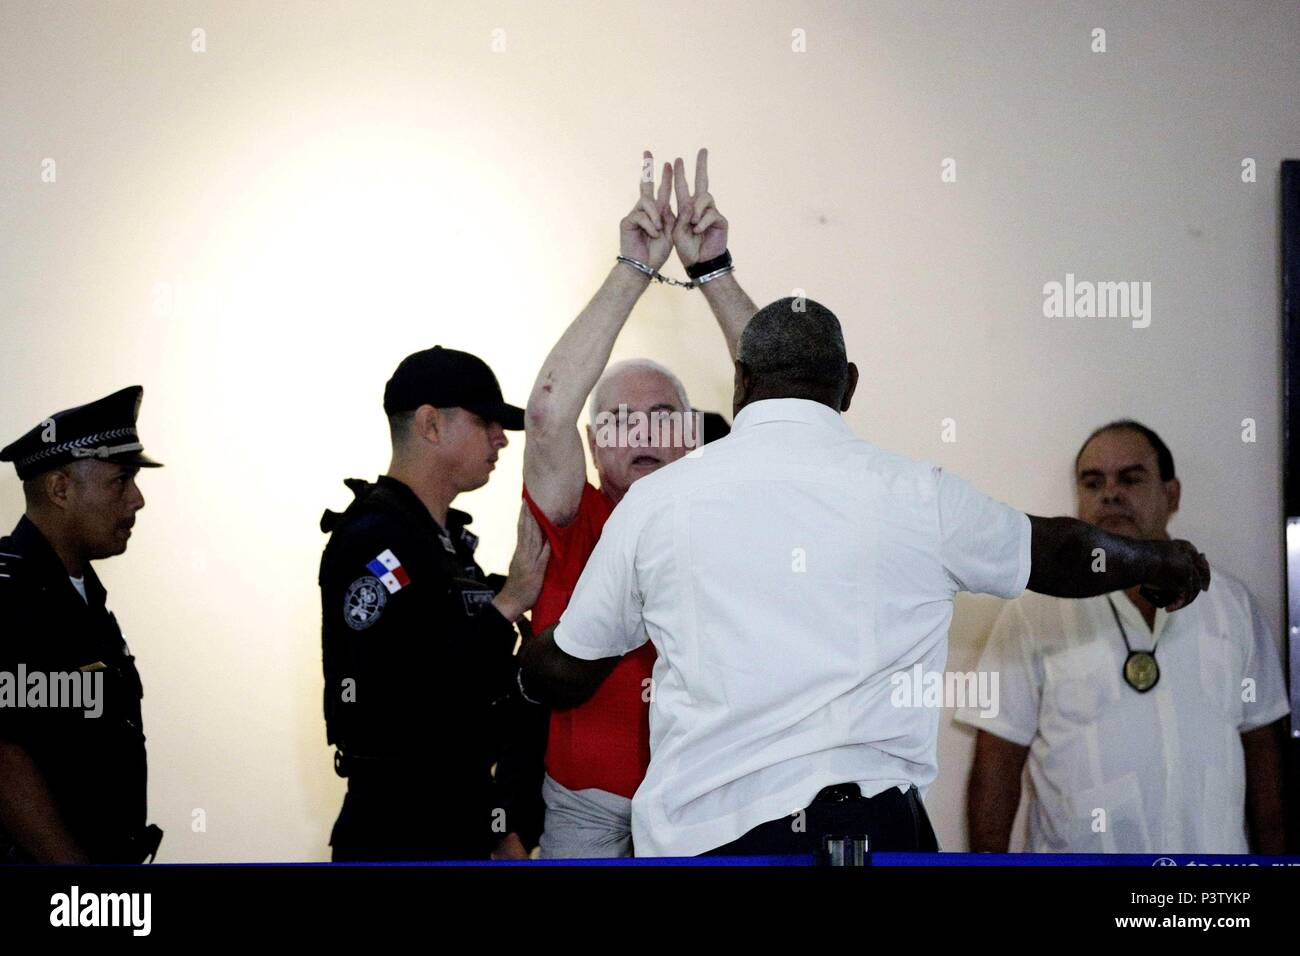 Former President of Panama, Ricardo Martinelli, is seen at his